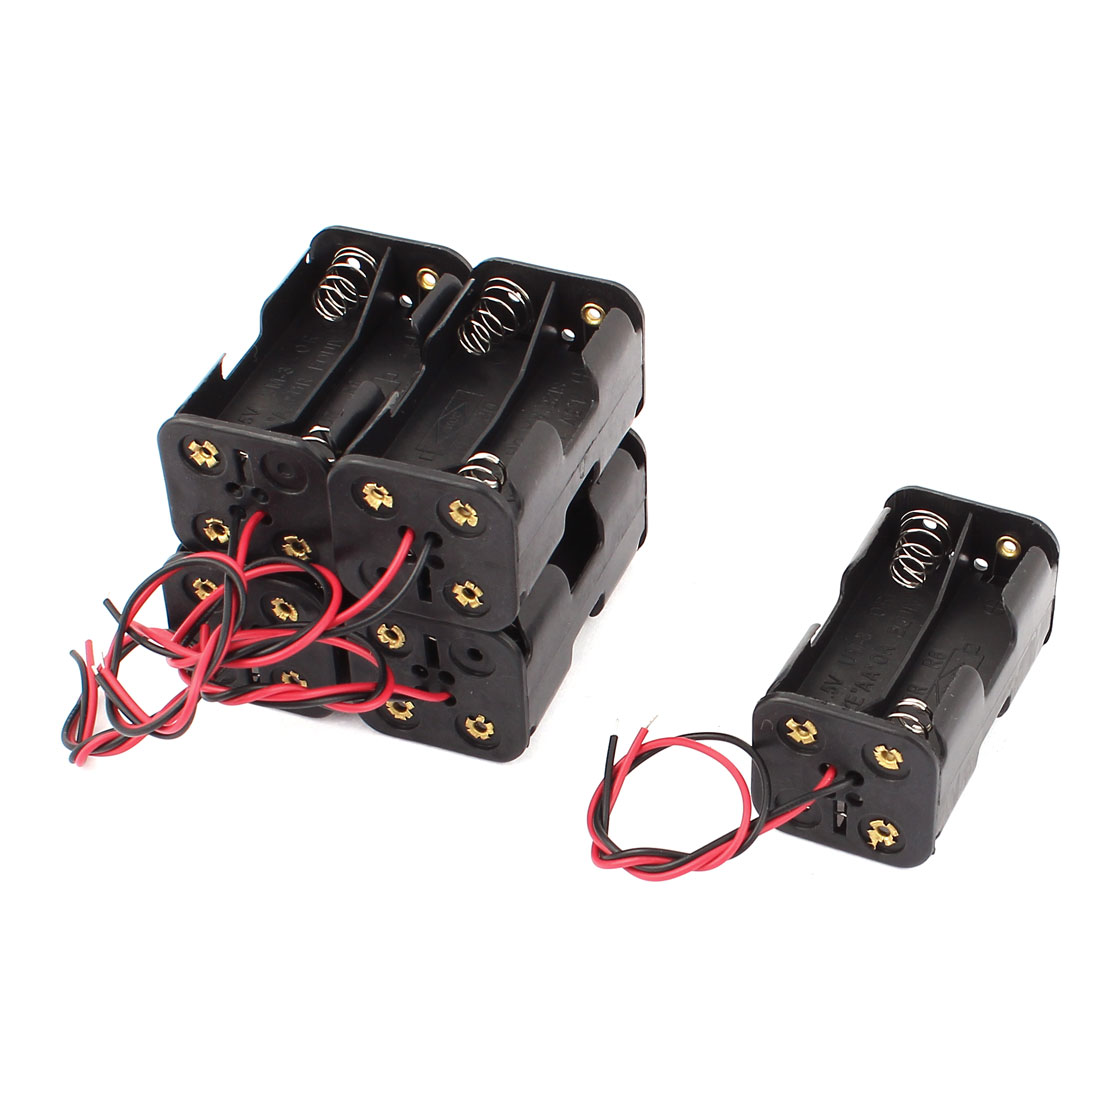 5Pcs 2 Wire Lead Double Side Battery Holder Box for 4 x 1.5V AA Batteries